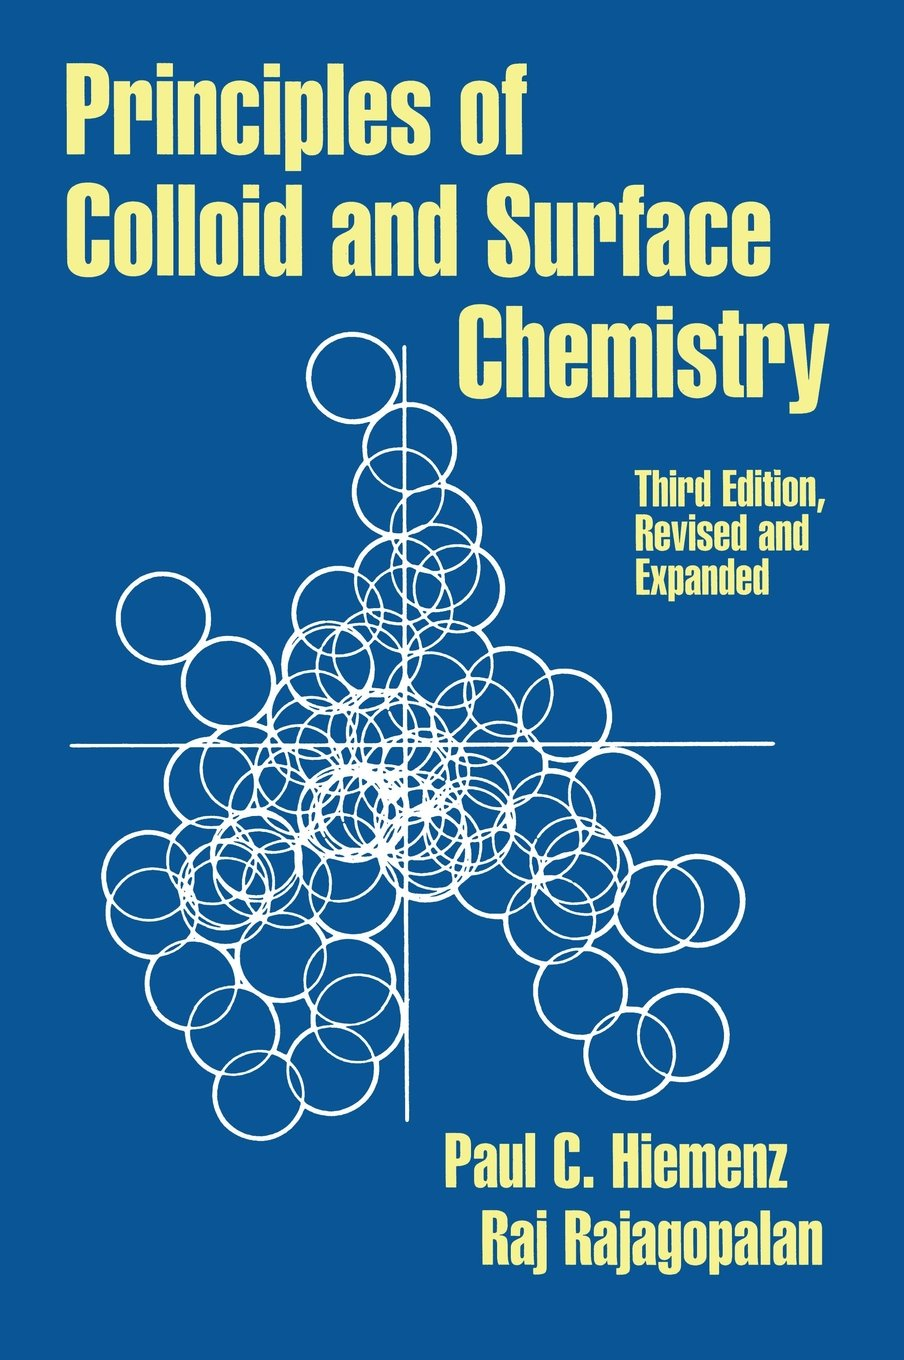 Principles of Colloid and Surface Chemistry by Raj Rajagopalan free download